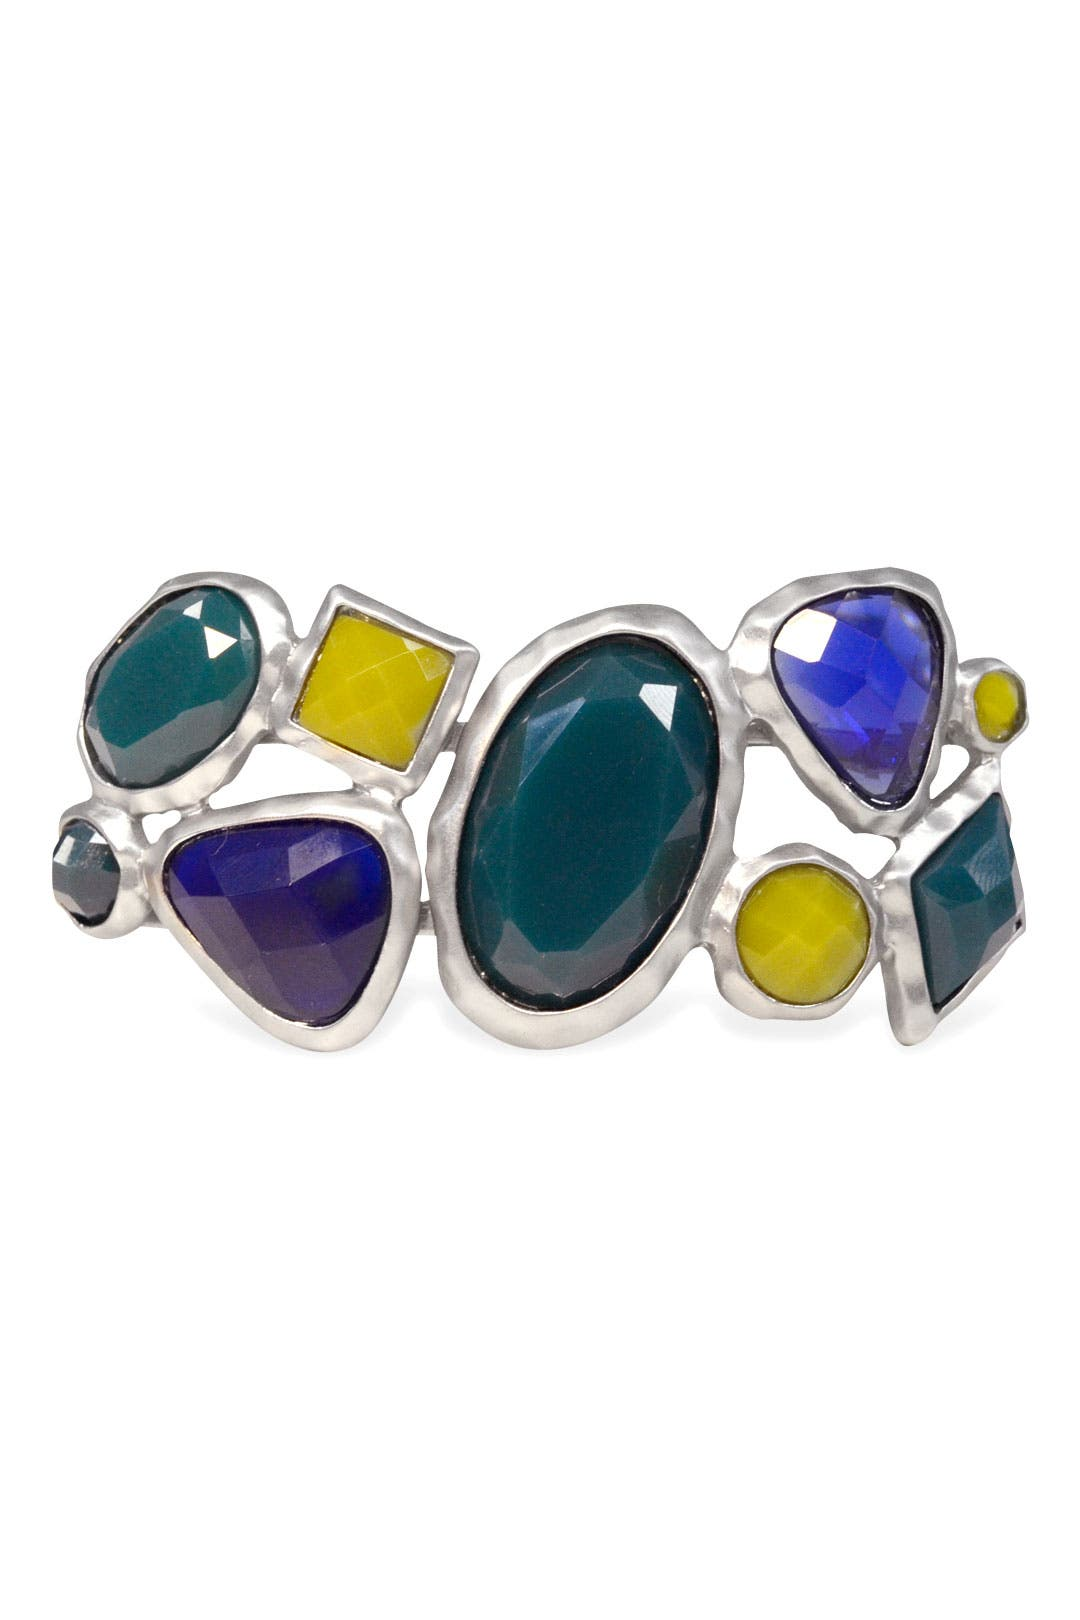 Peacock Stone Bangle by Cinder & Charm